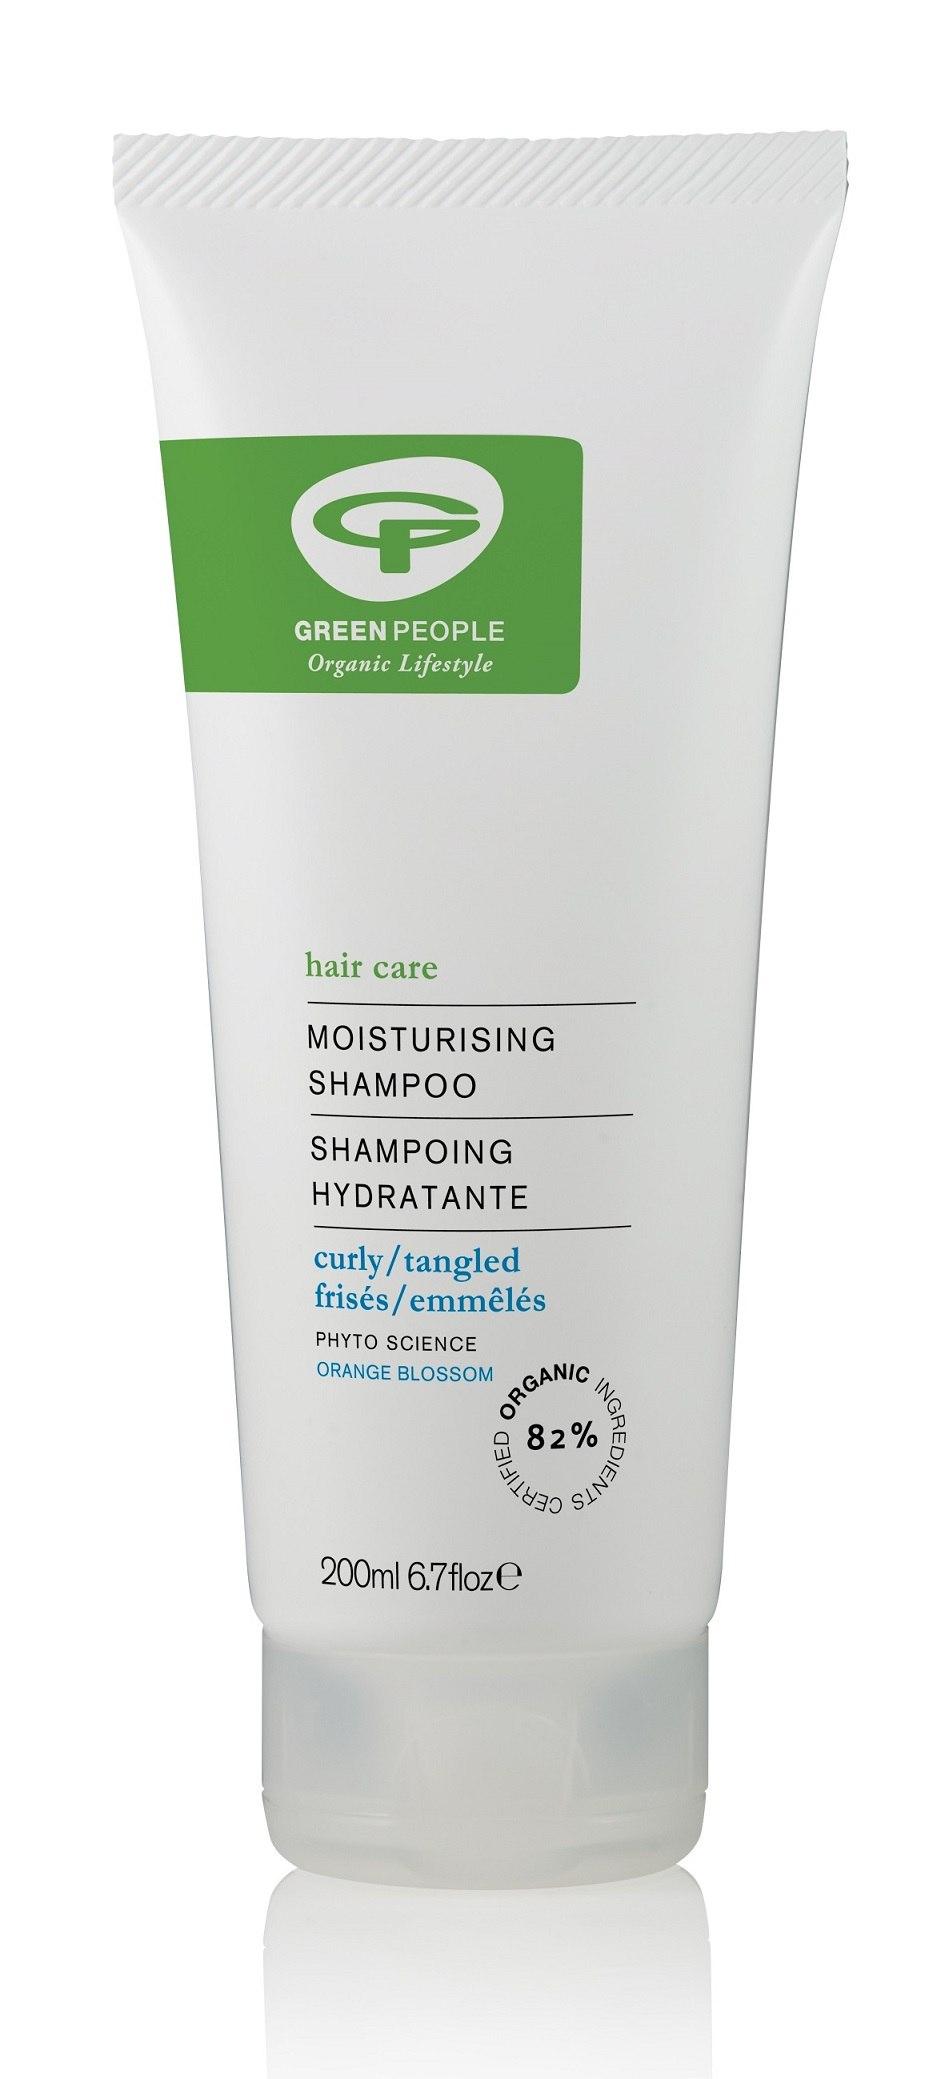 Image for <B>Green People Moisturising Shampoo 200mls </B><I> </I>